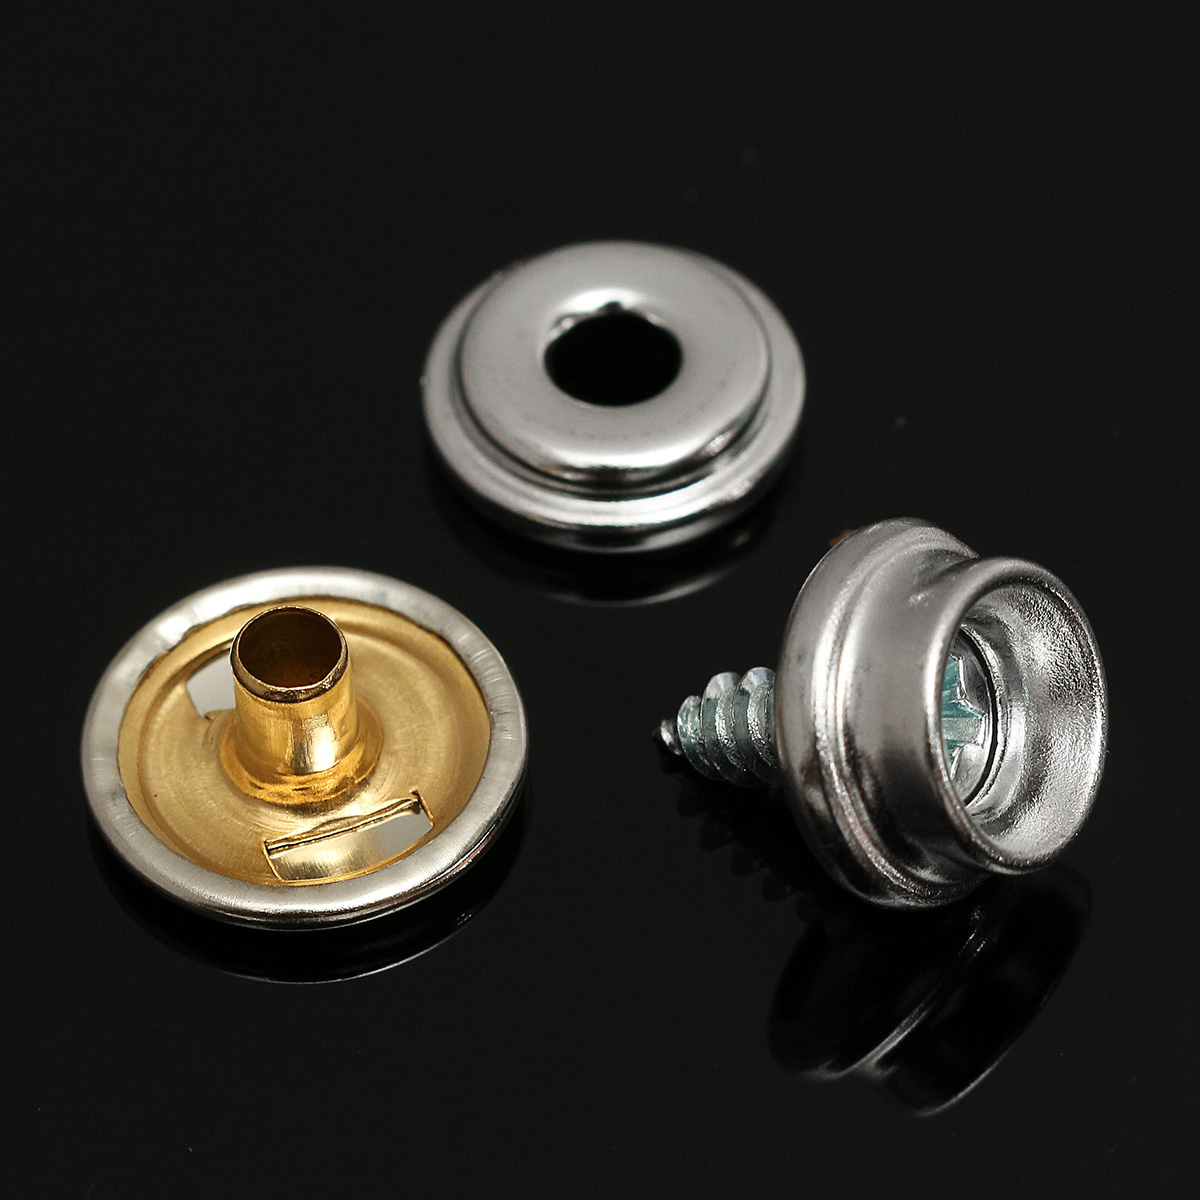 100 Pack Male Stainess Steel Marine Snap Fasteners for Boat Canvas Cover Top etc